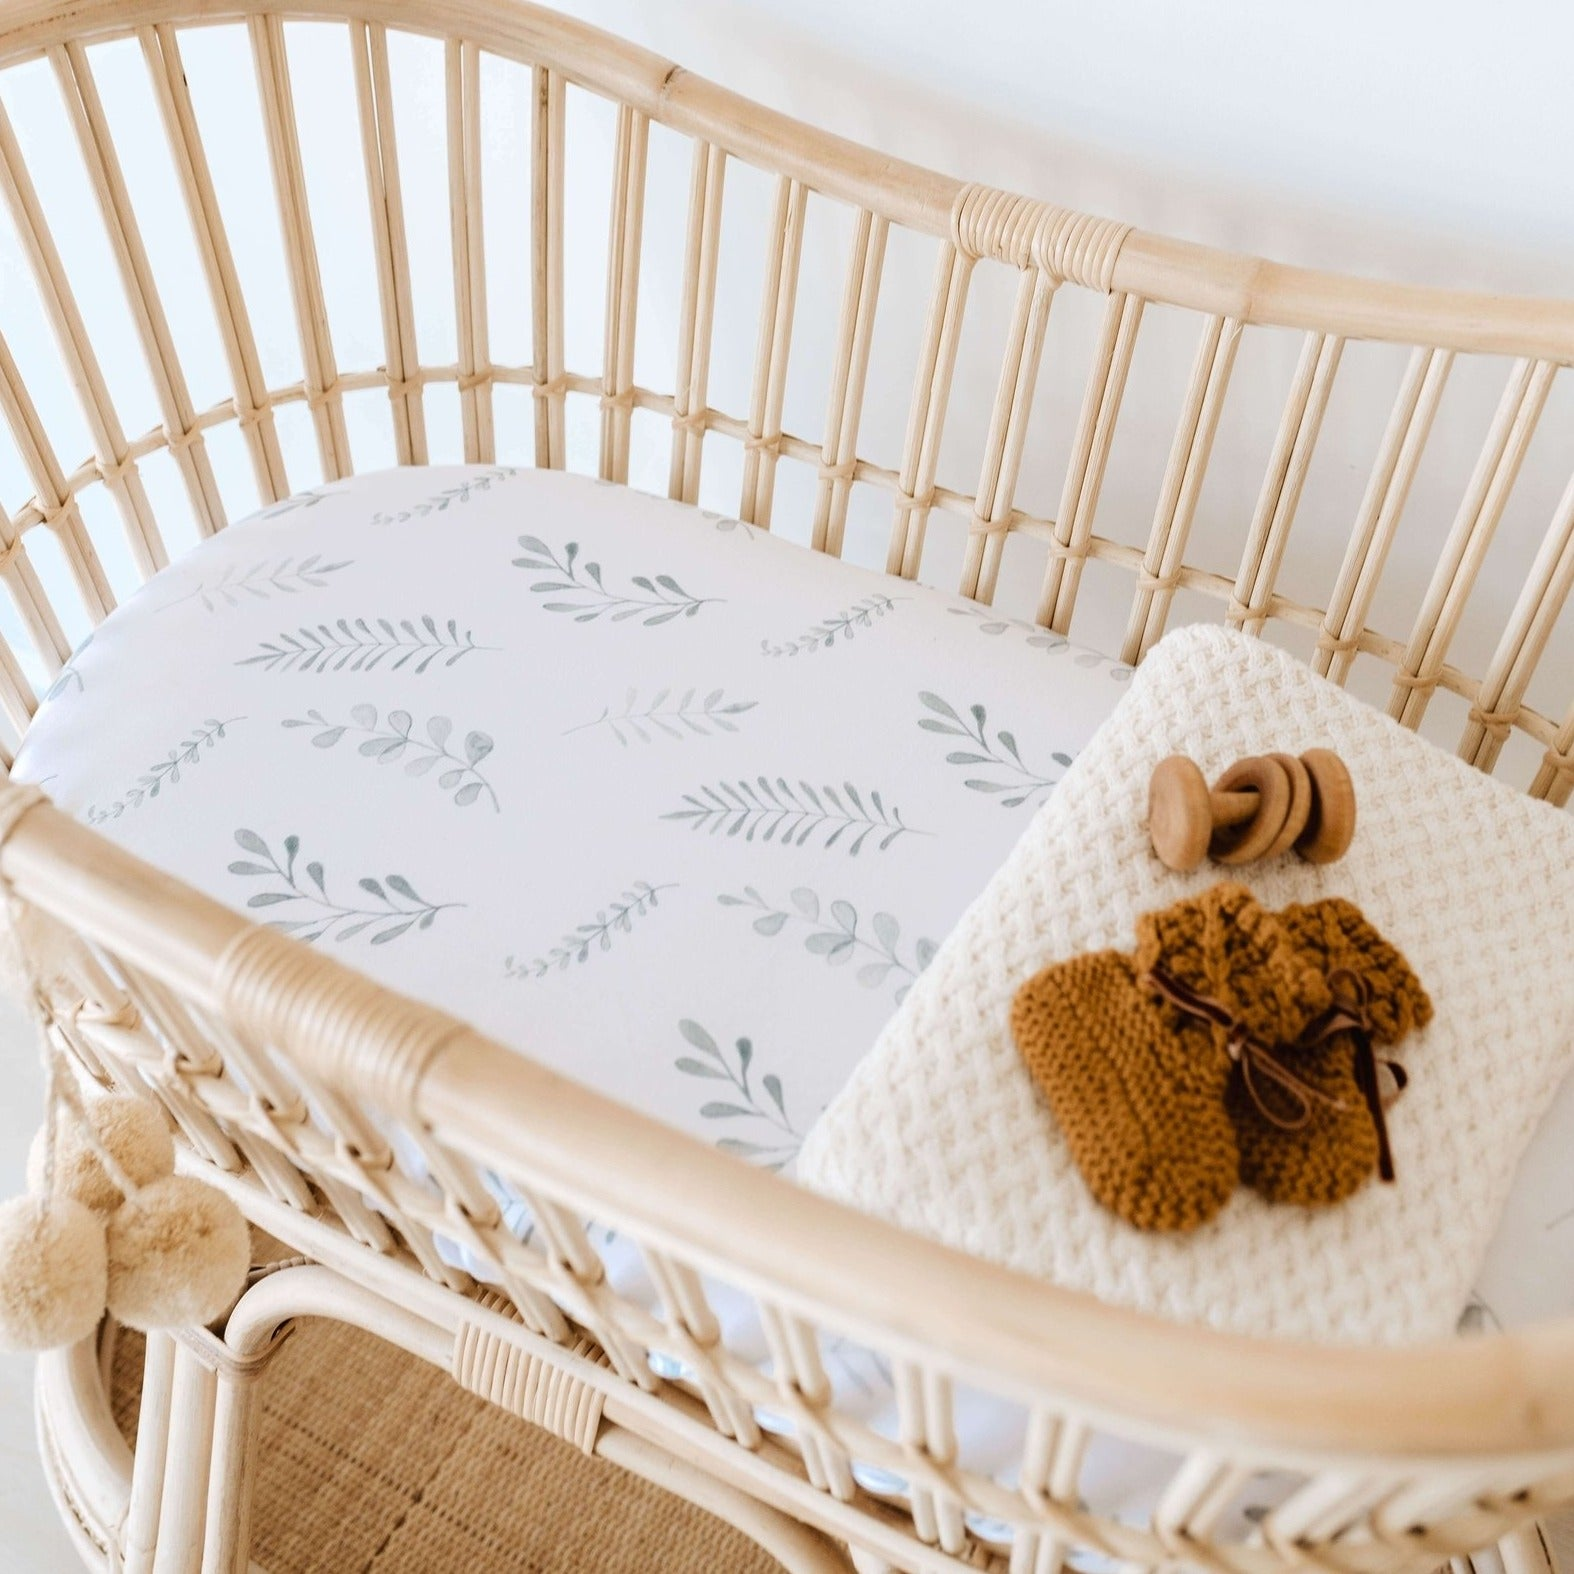 Snuggle Fitted Bassinet & Change Pad Cover - Wild Fern - Angus & Dudley Collections